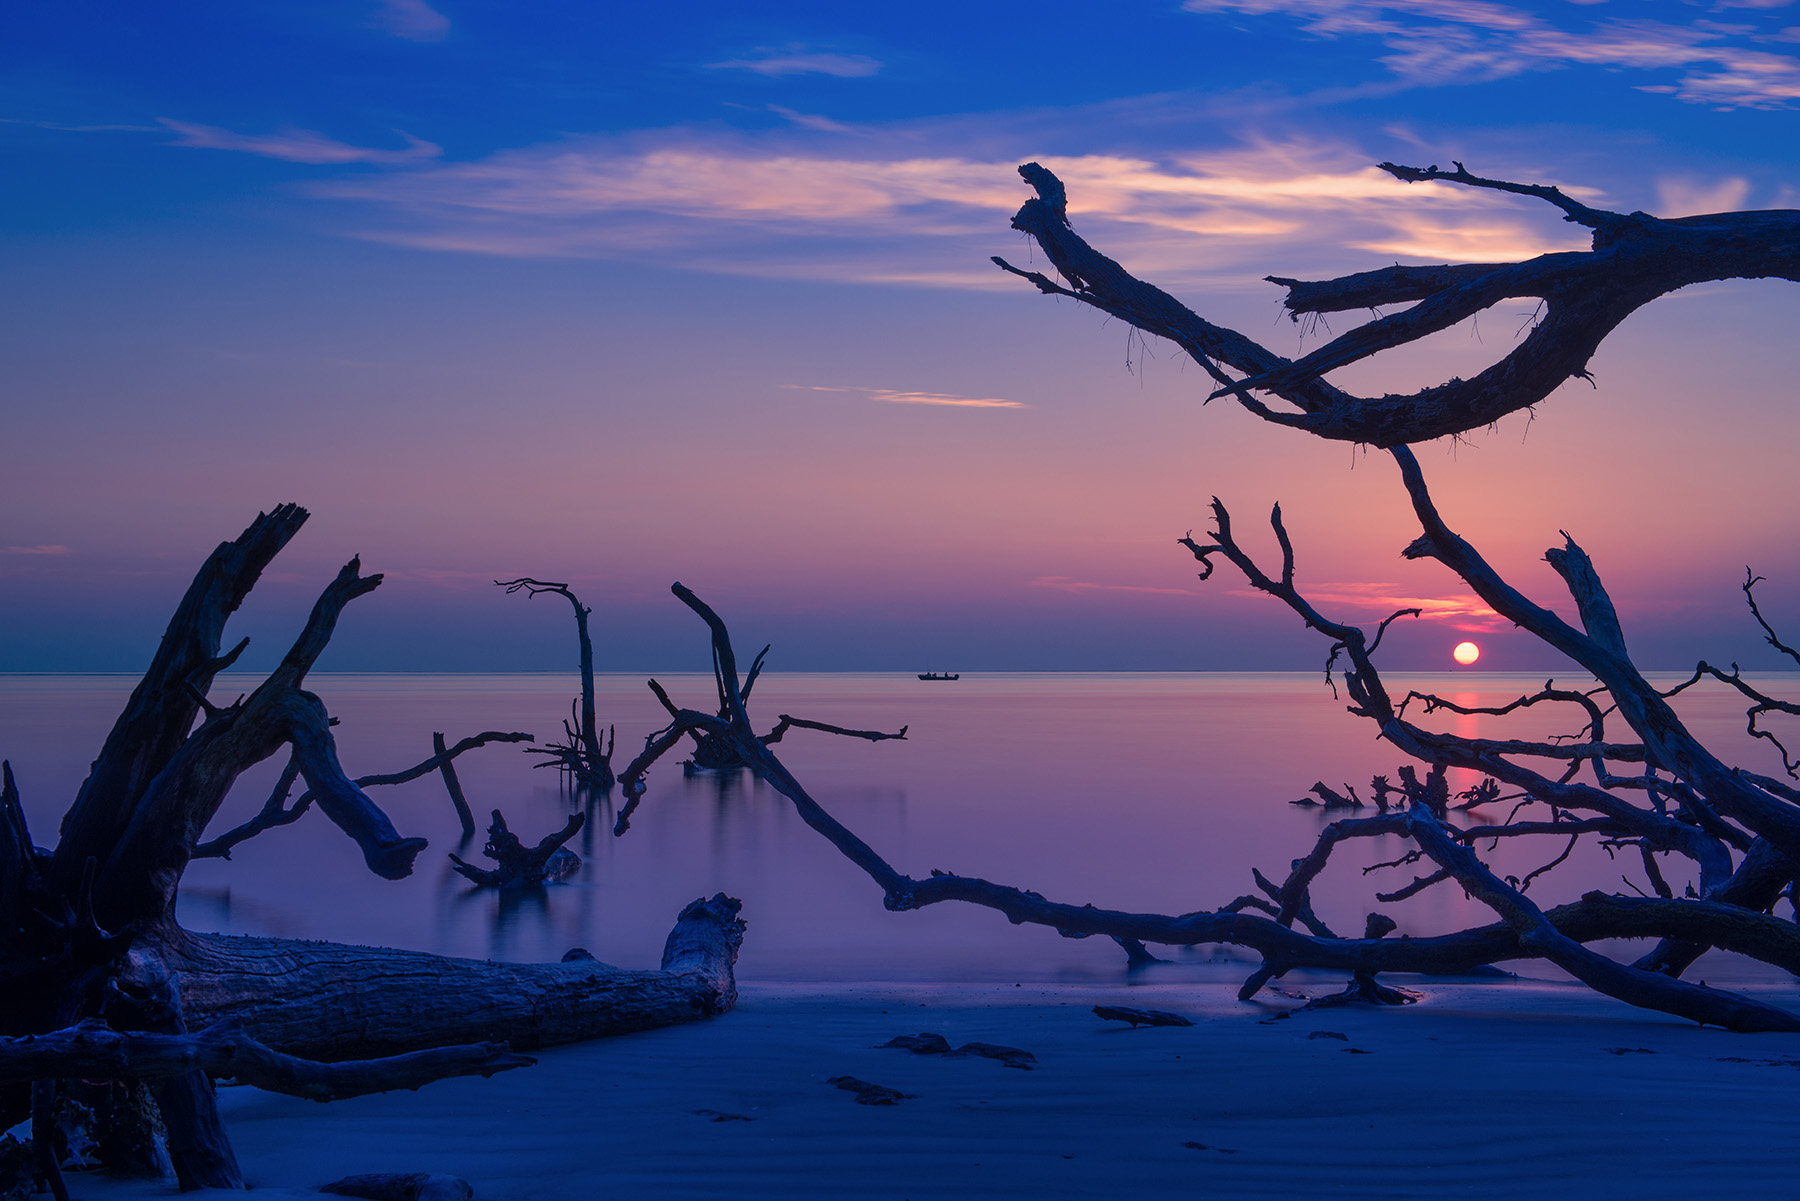 Big Talbot Island - A great little place to catch a sunrise, and only about 45 minutes north of Jacksonville Beach. The driftwood on the beach is constantly moved around by the tide, so every time you visit you have no idea what it's going to look like. How cool is that?!